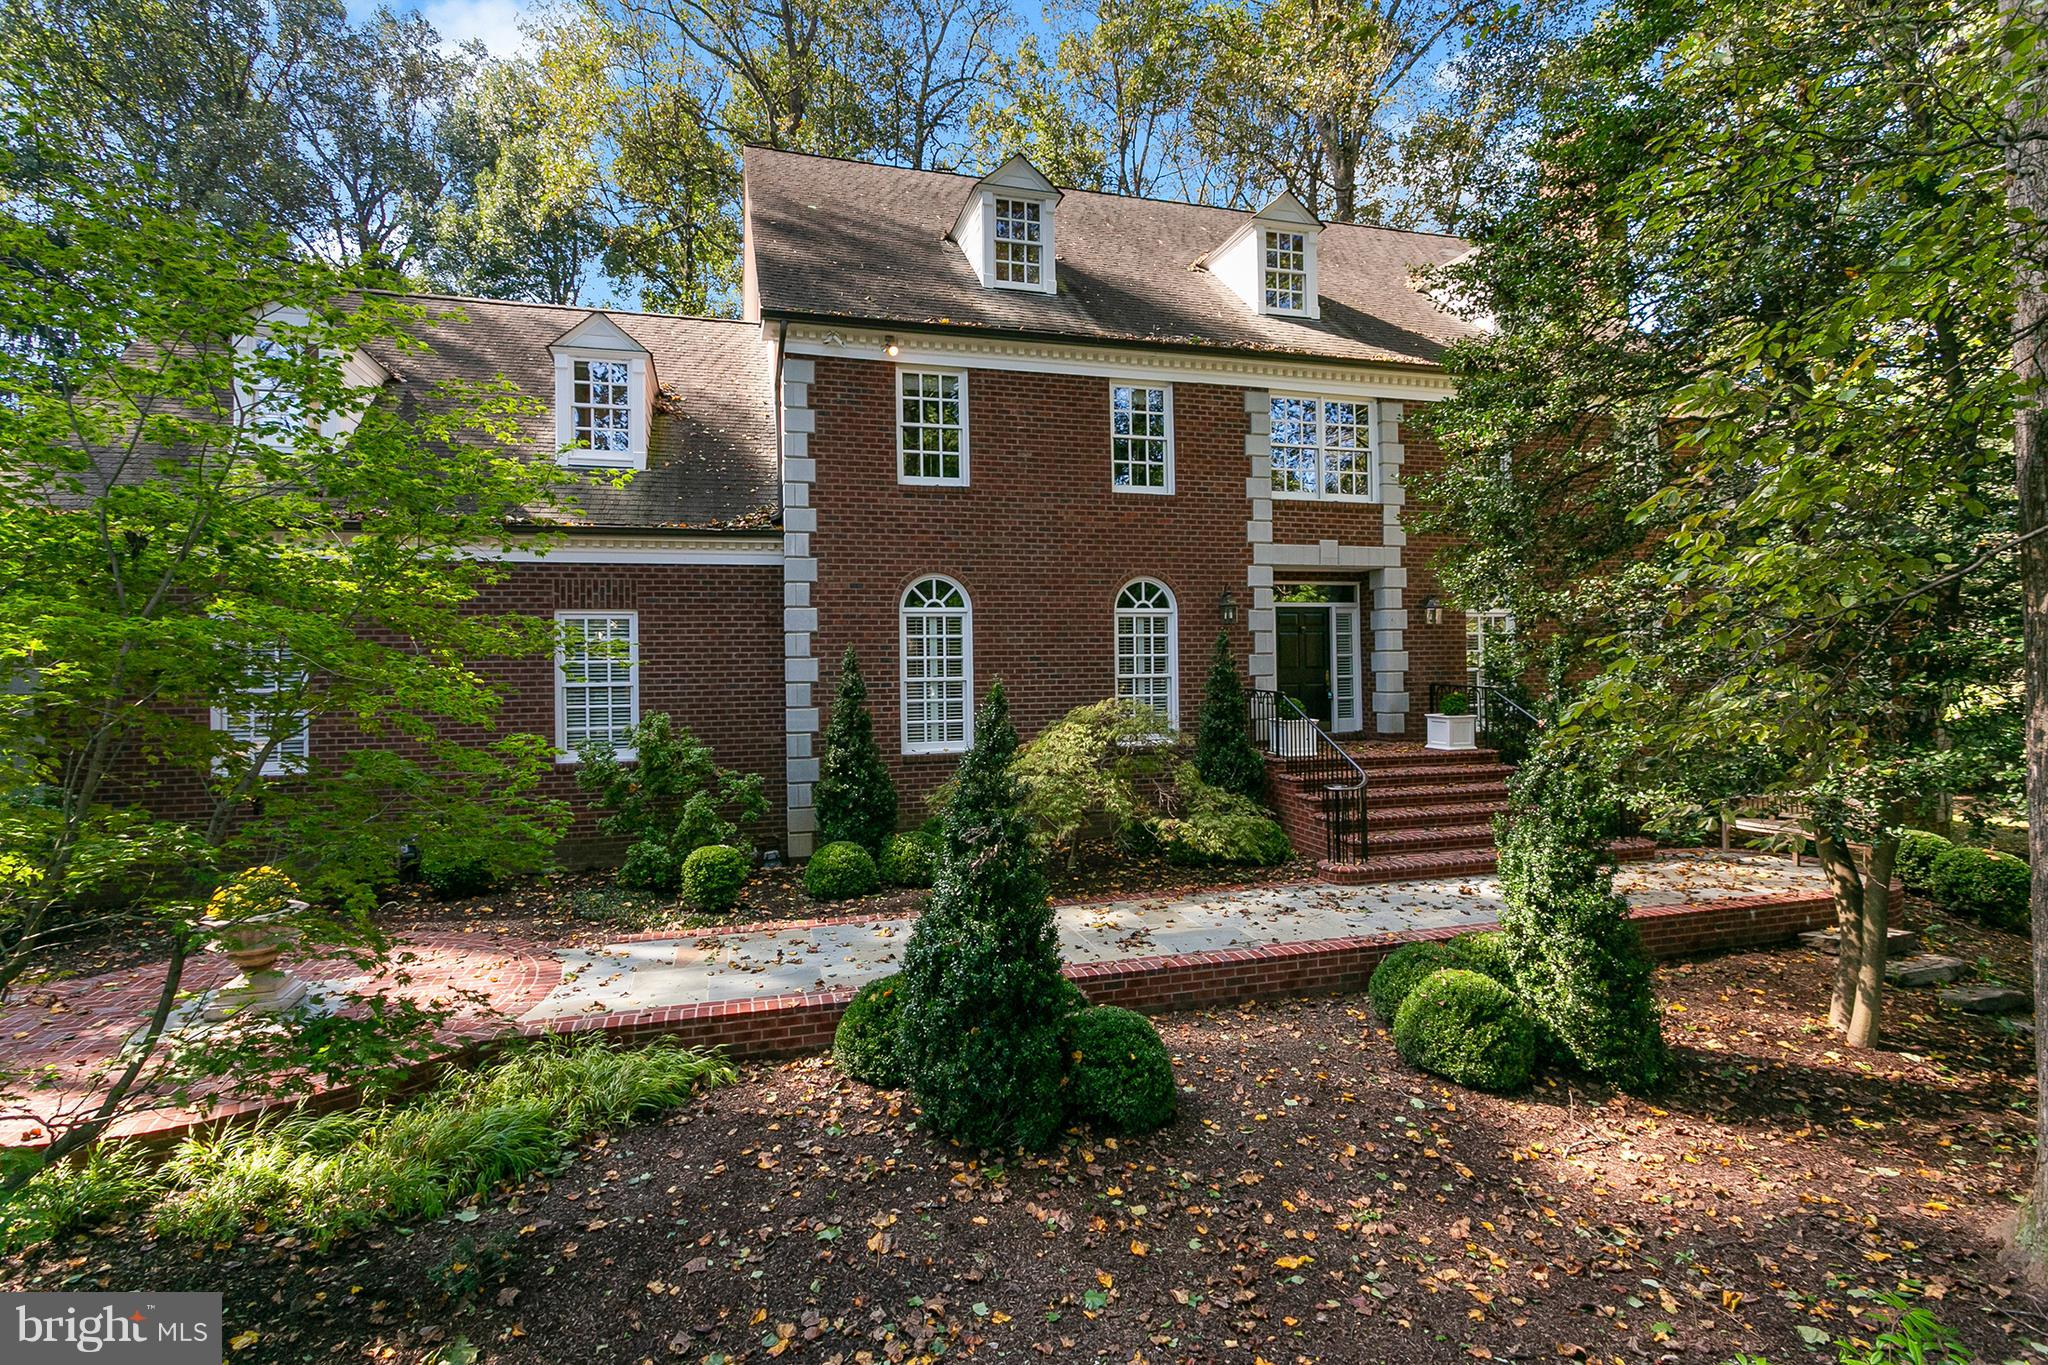 Beautiful & private custom built Colonial in the heart of Oakton. 4 levels w/ 5 bedrooms on the upper level, 4th floor bedroom & playroom/homework space. Basement features in law suite, movie room, huge wet bar, pool table - amazing for entertaining. Huge screened in porch overlooking trees. Flagstone walkway & porch, Trex deck. Serene 1.7 acre lot on quiet street but minutes to 66 & Vienna Metro!